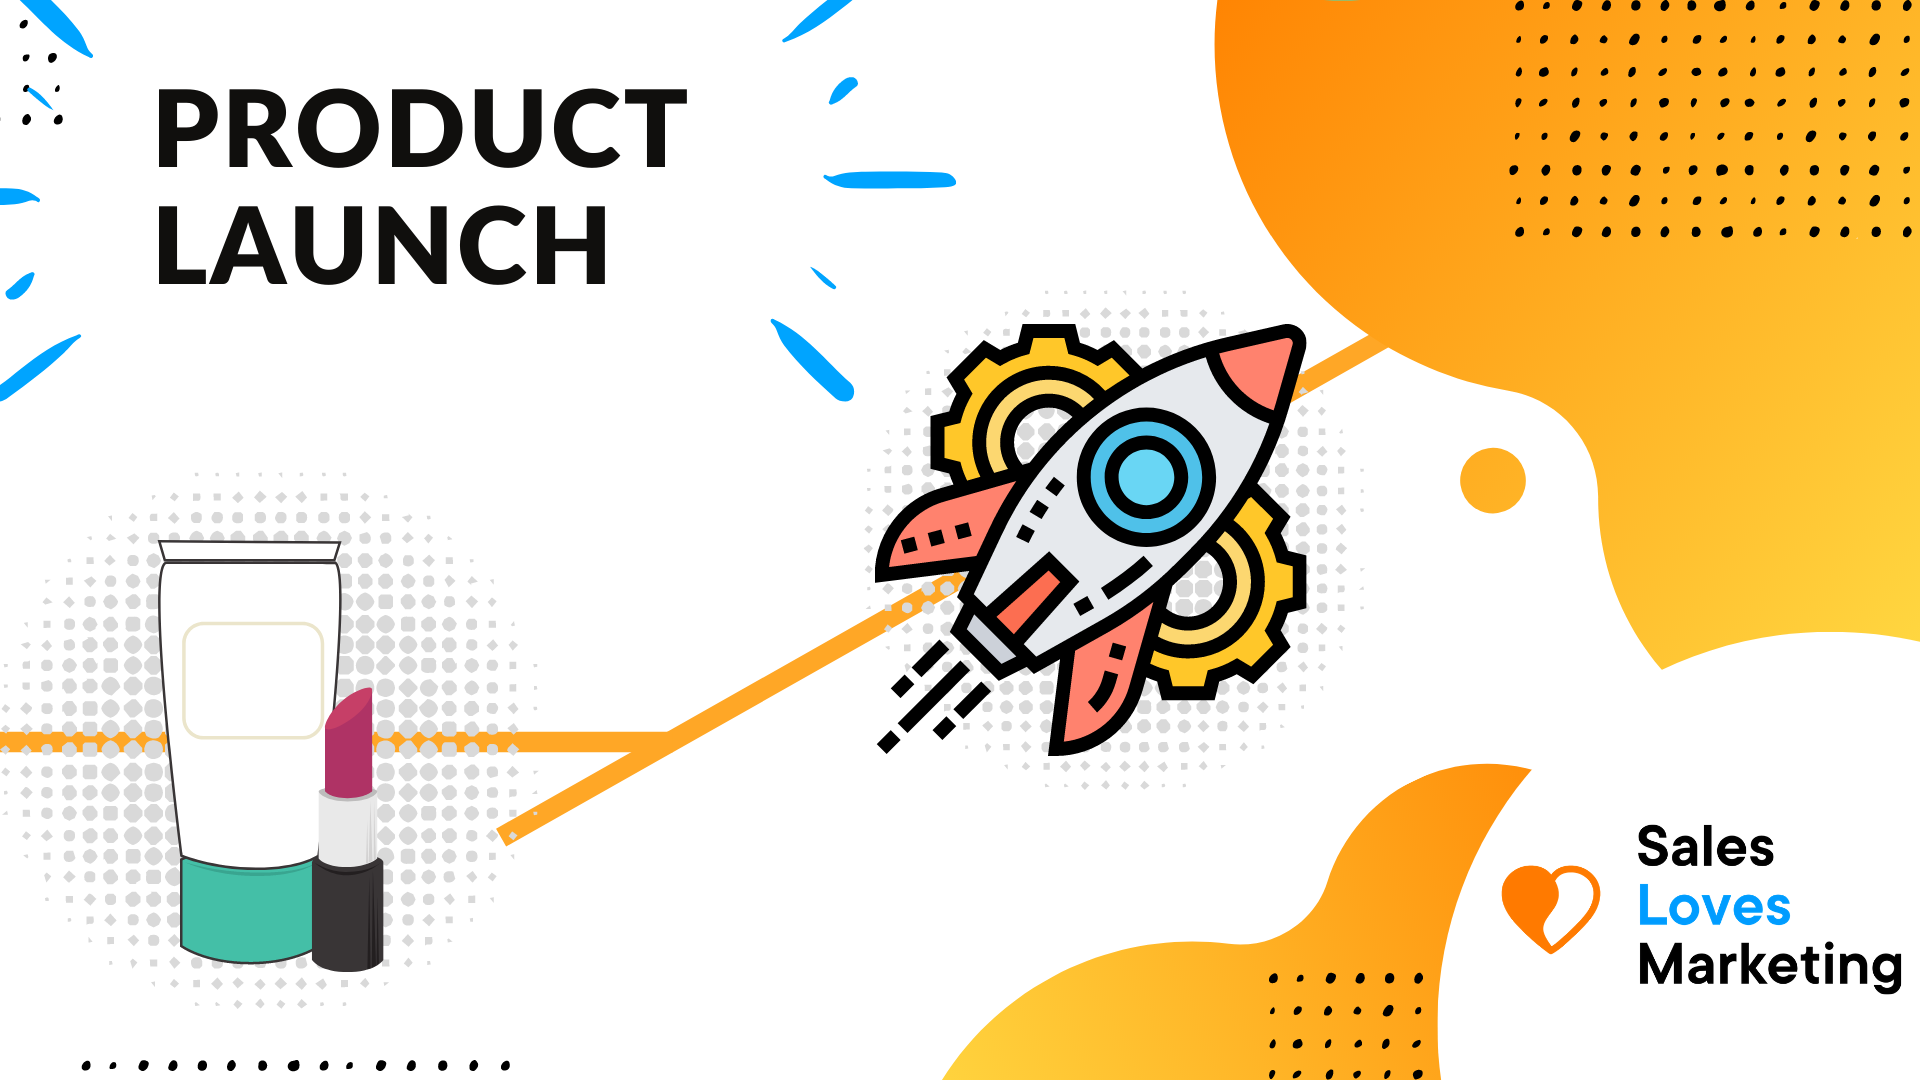 Step 3. Launching a New Product: Steps to Make Sure Your Product Launch Is Successful